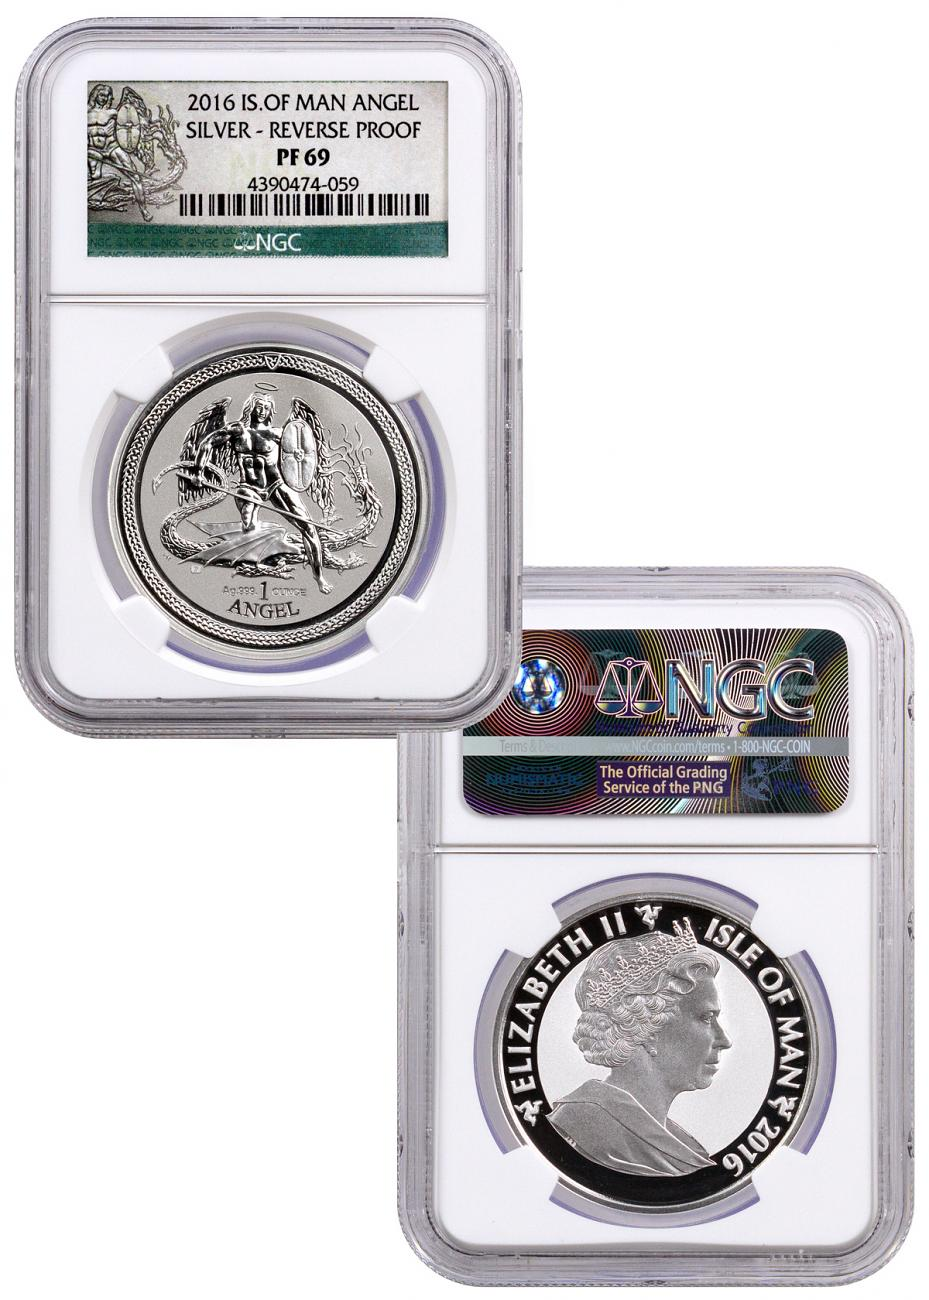 Set of 2 2016 Isle of Man Set of 2 - 1 oz Silver Angel Proof + Reverse Proof NGC PF69 (Angel Label)